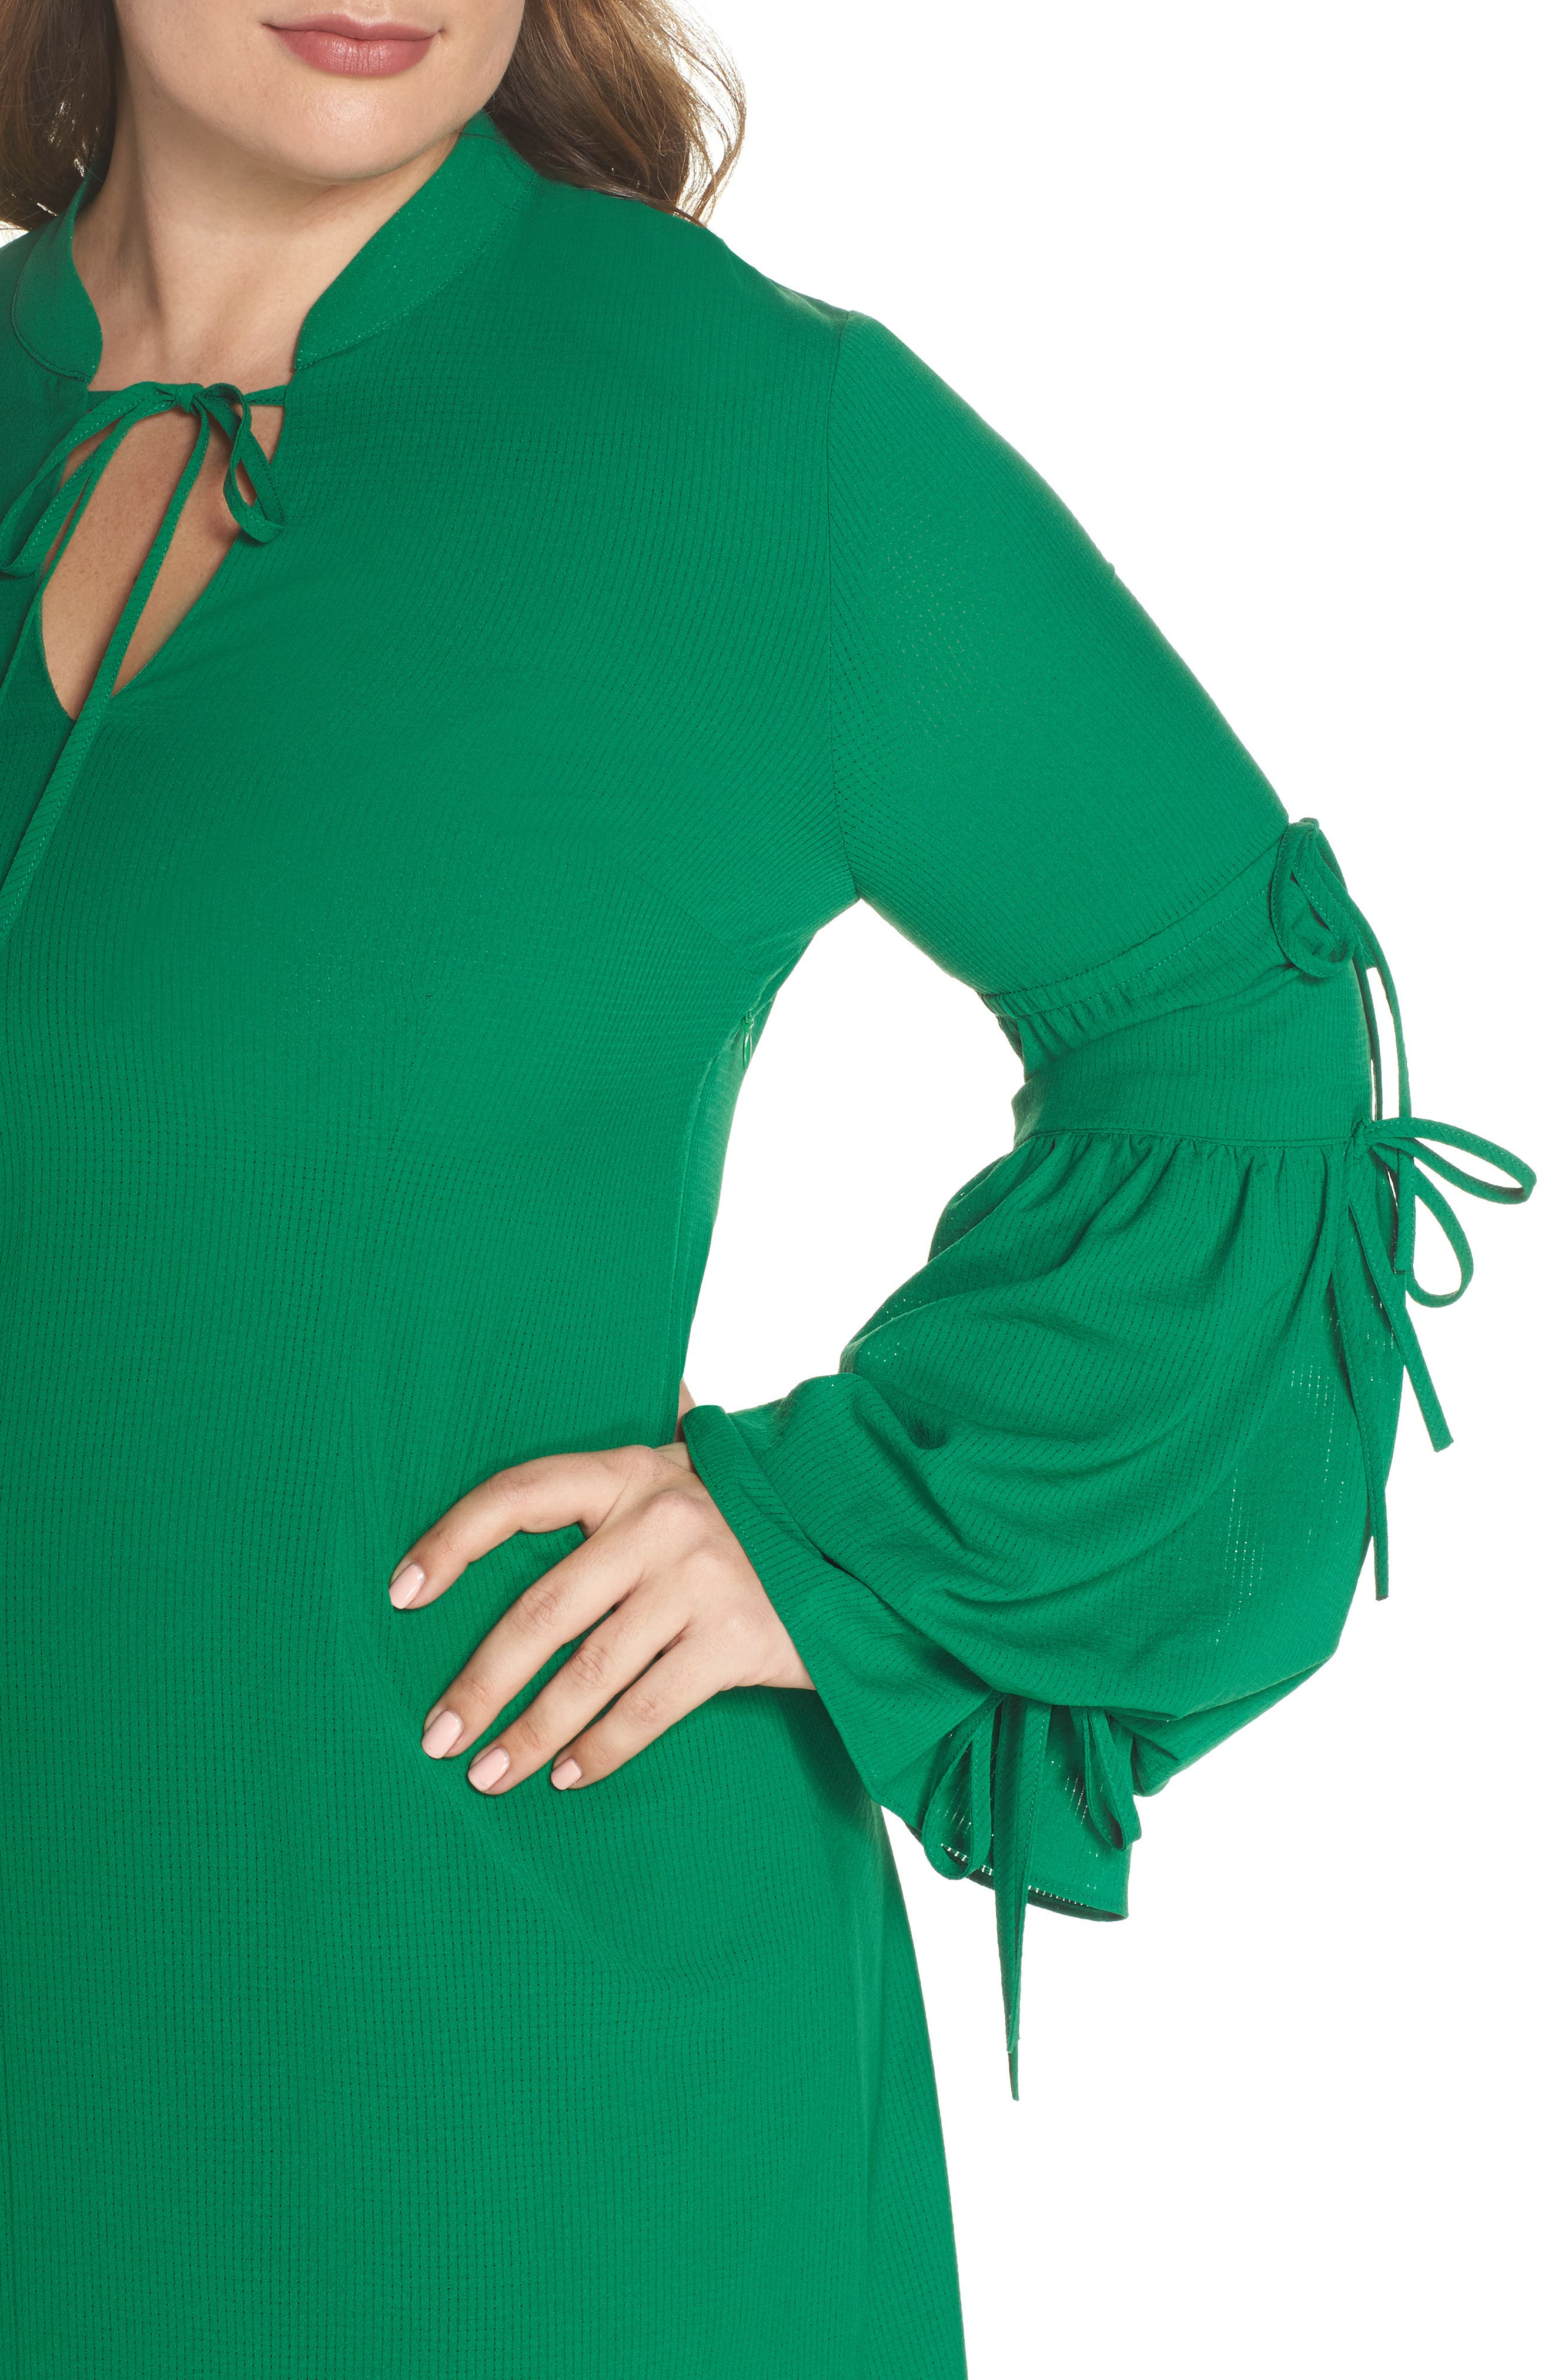 Leiko Antoinette Puff Sleeve Tea Dress,                             Alternate thumbnail 5, color,                             Green